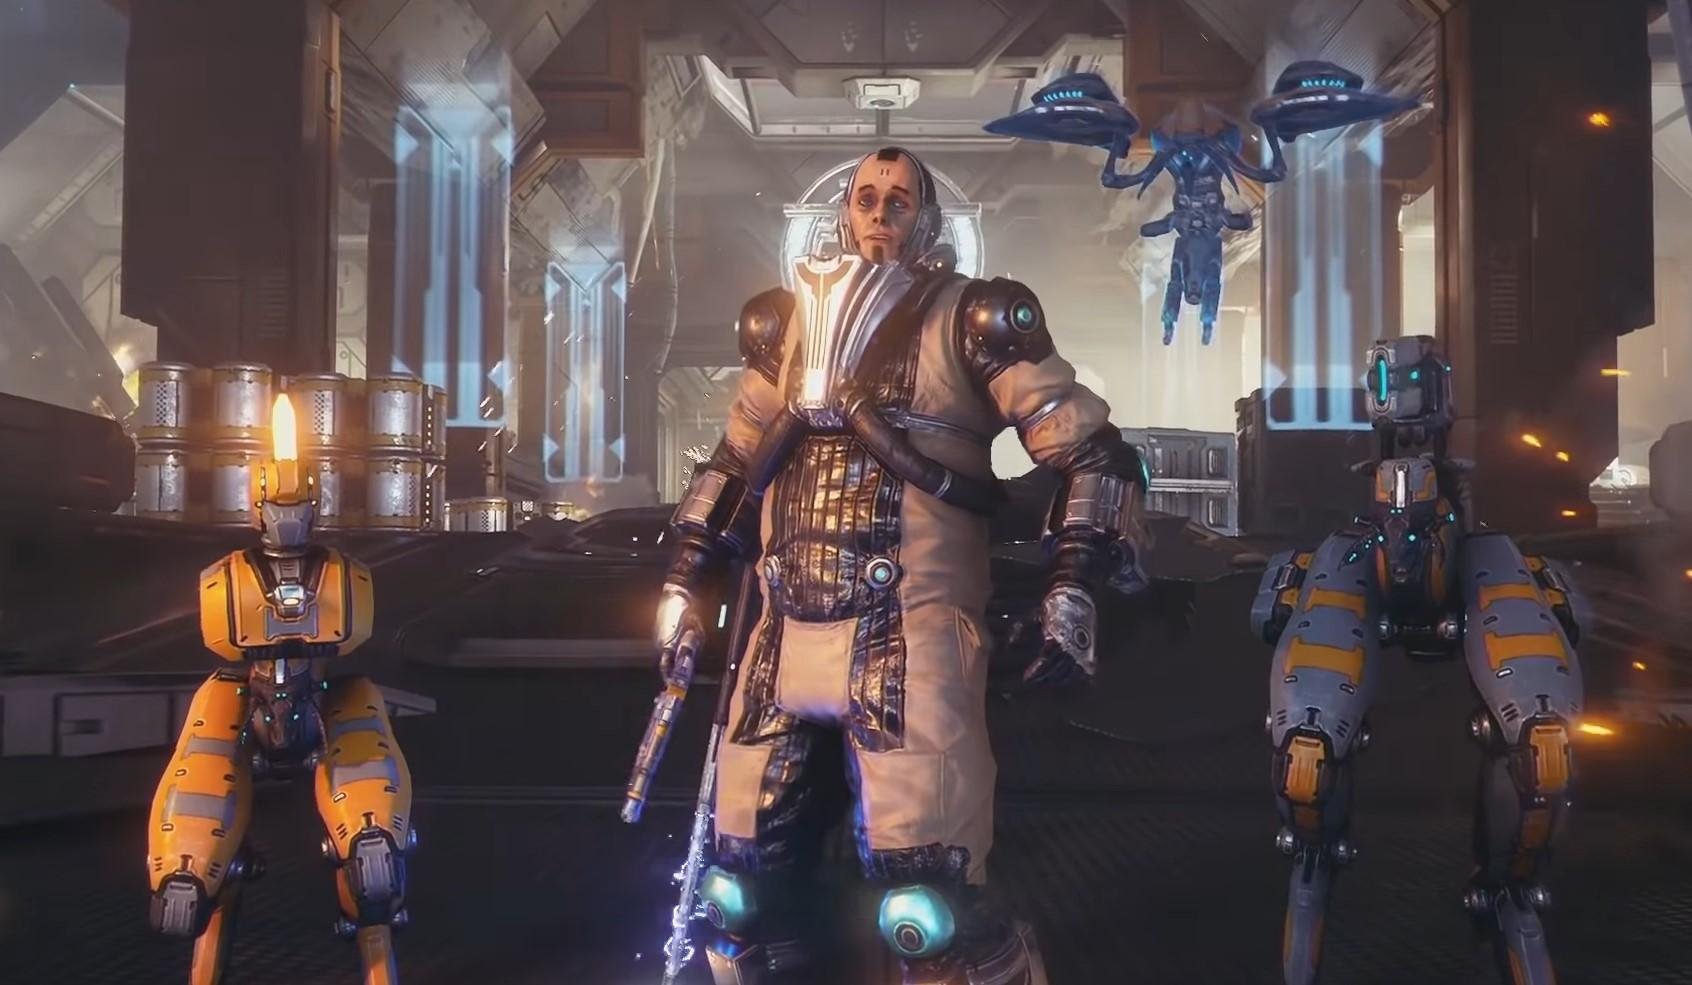 Veso, the playable Corpus Crewman featured in the New War demo in Warframe